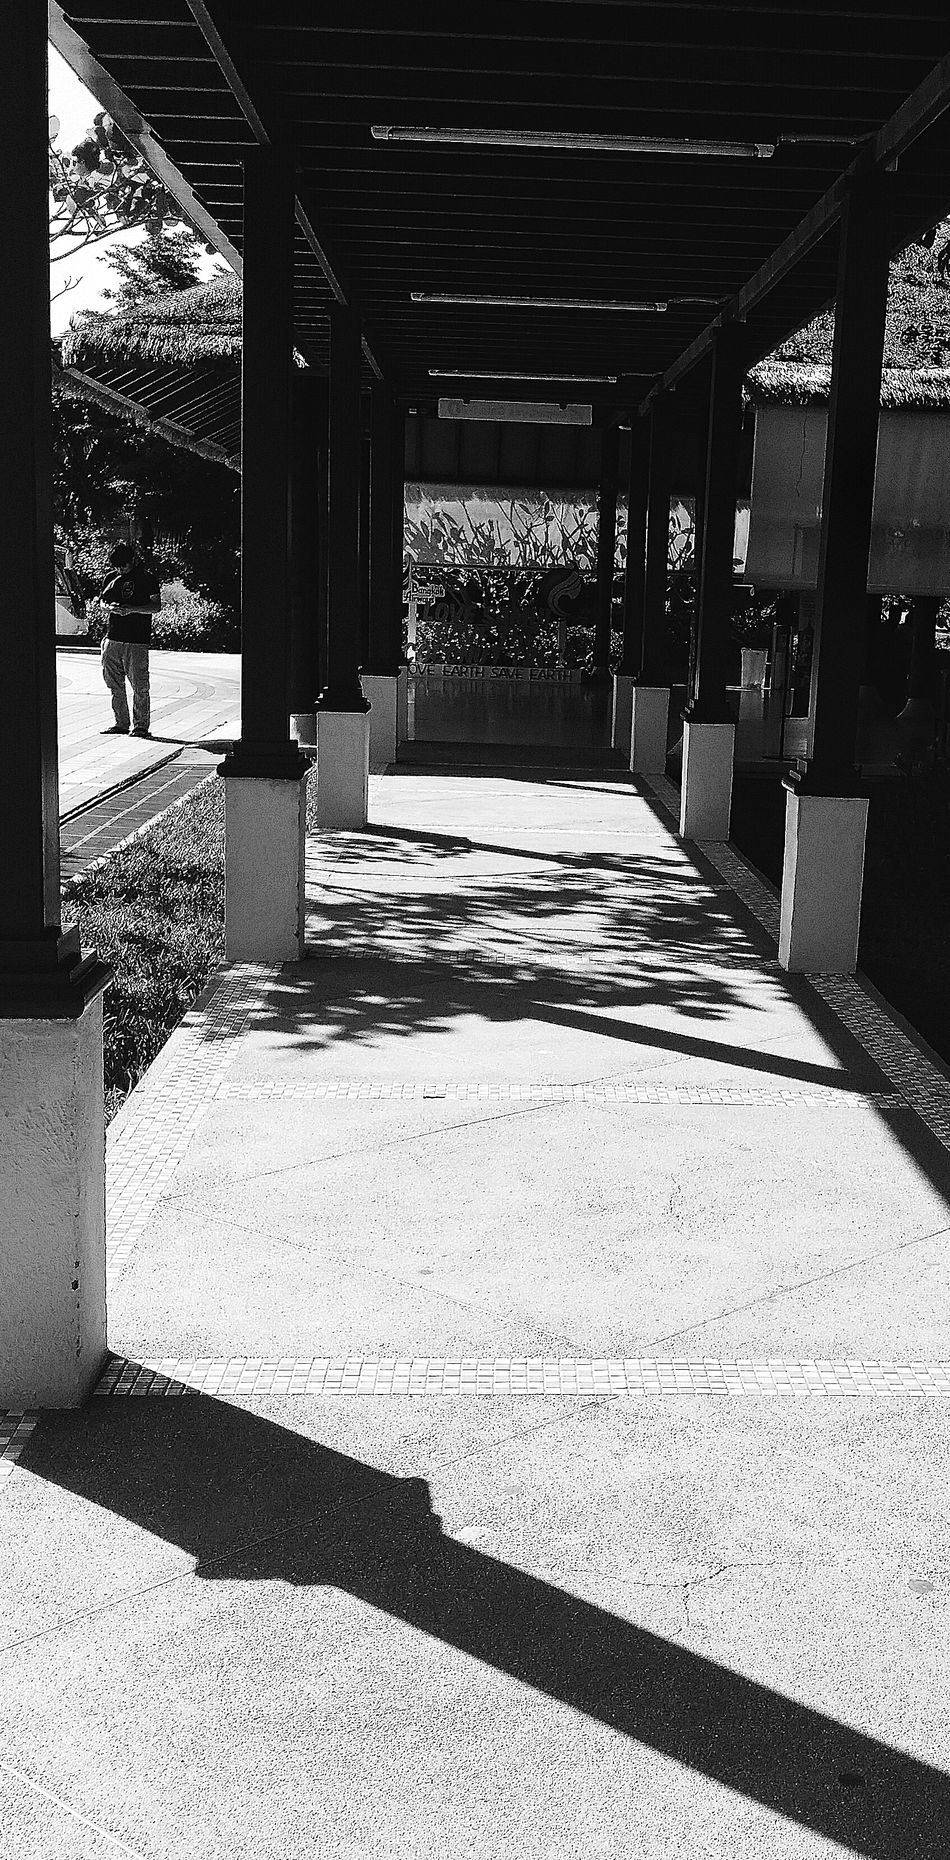 Trees Son Light And Shadow Shadows Koh Samui Airport Thailand Travelphotography Streetphotography Bnw Bnwcollection Bnwphotography Bnw_life Bnw_travel Bnw_captures Bnw_world Bnw_kohsamui Bnw_thailand Eyeemkohsamui Eyeemthailand Eyeemcollection Eyeemphotography Eyeem Streetphotography